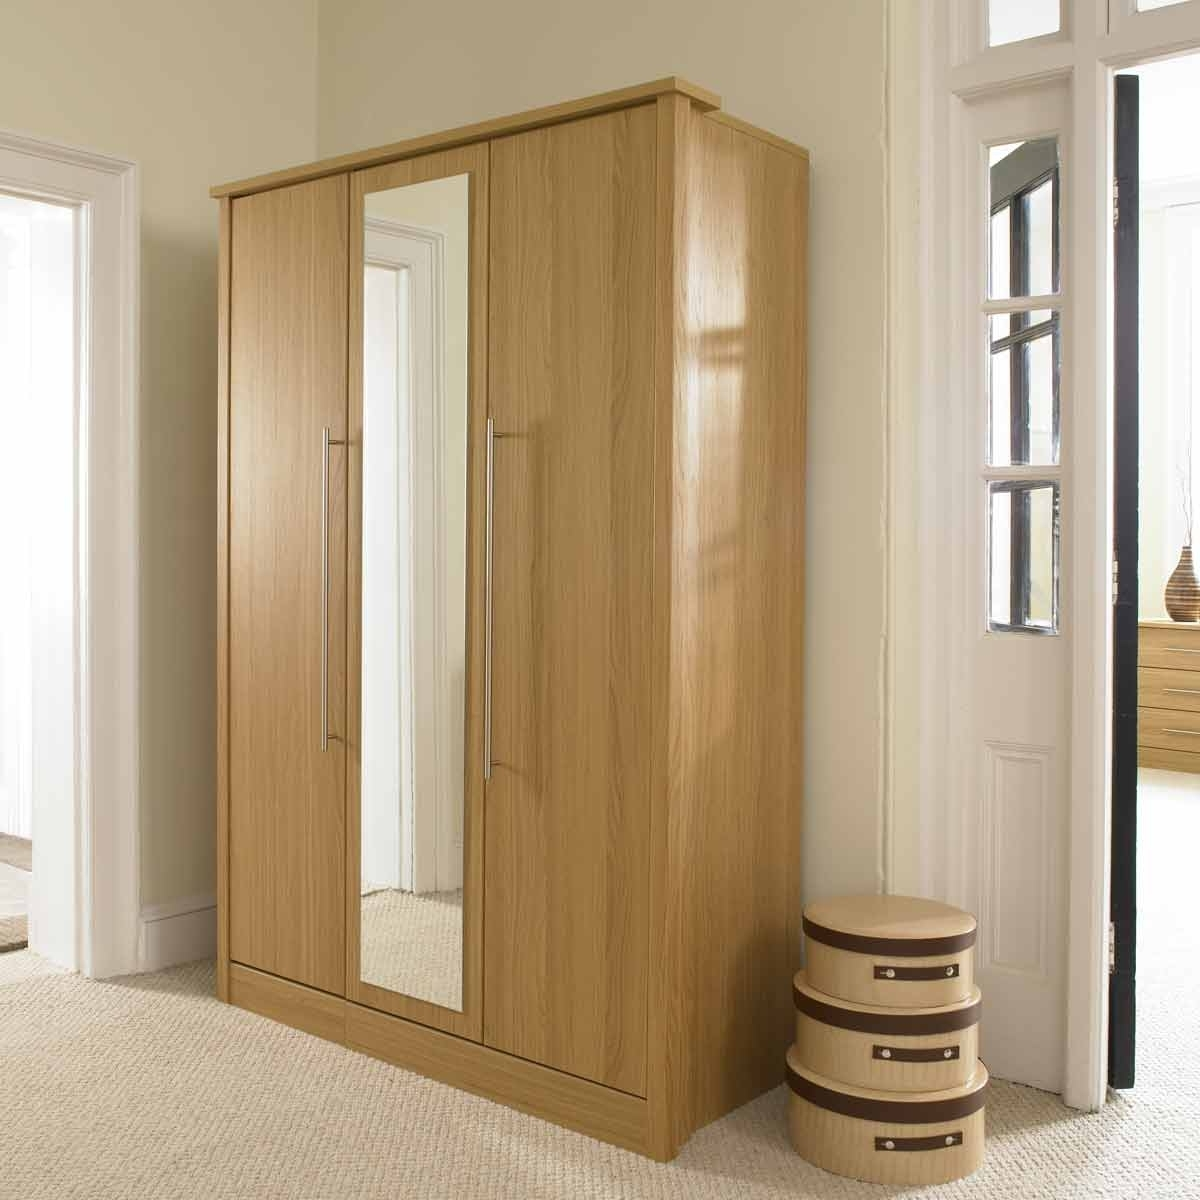 Oak Mirrored Wardrobes Within Trendy Mirrored Wardrobe Doors Sydney On Furniture Design Ideas In Hd (View 5 of 15)